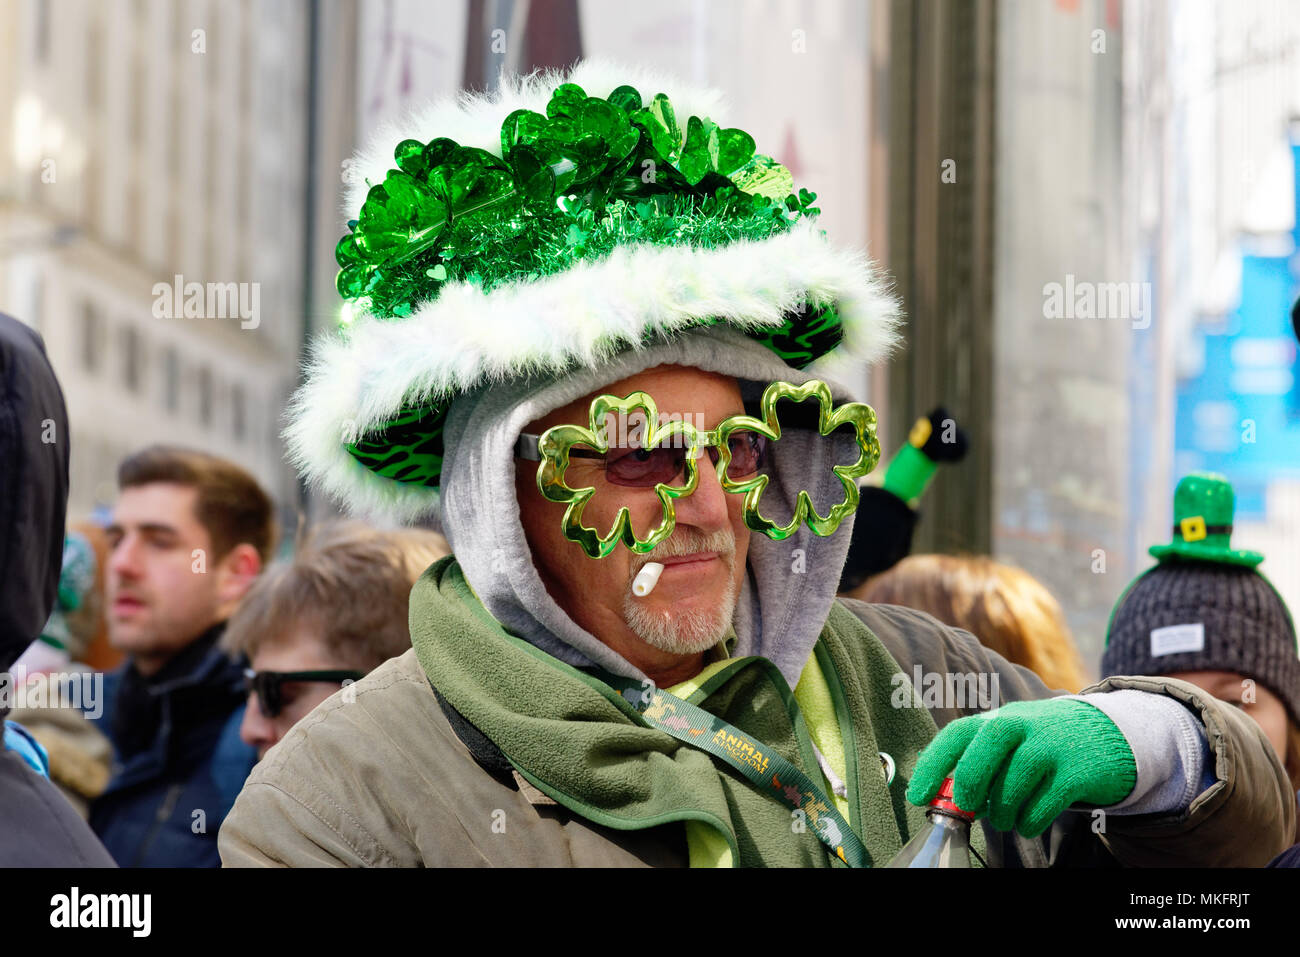 a-man-wearing-shamrock-shaped-sunglasses